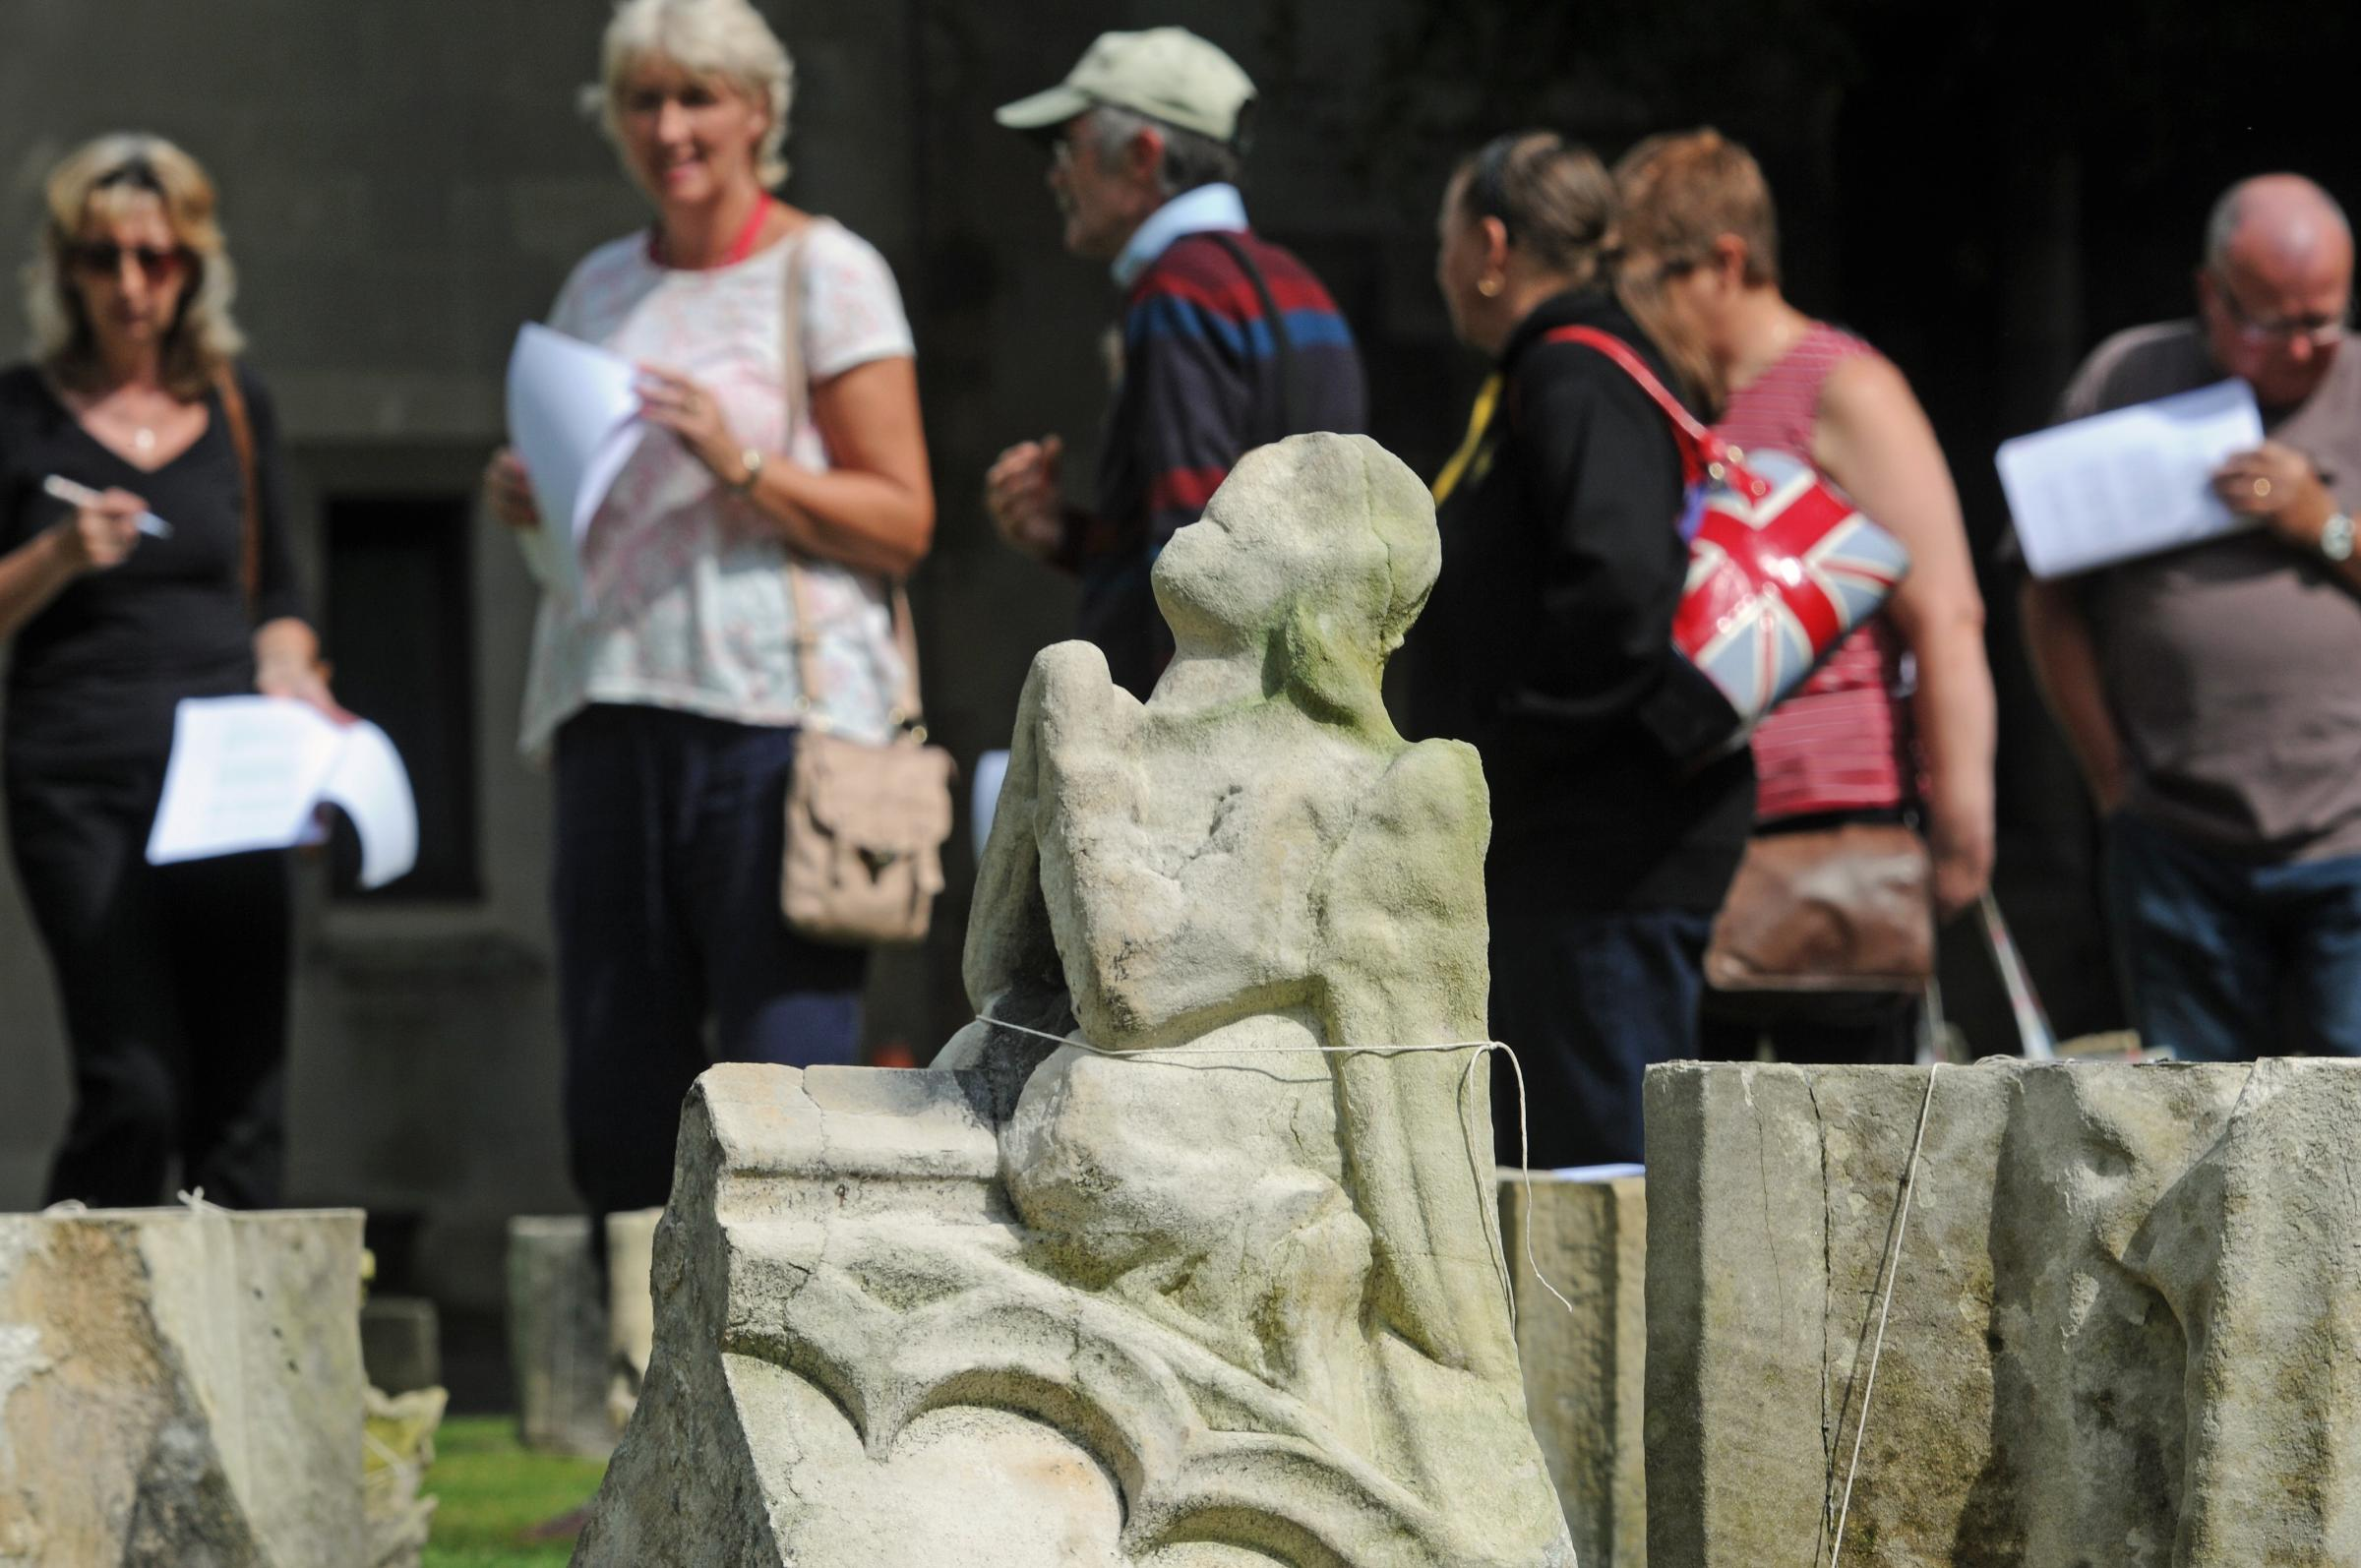 Prospective buyers, in Dean's Park, view items in the York Minster stone auction.